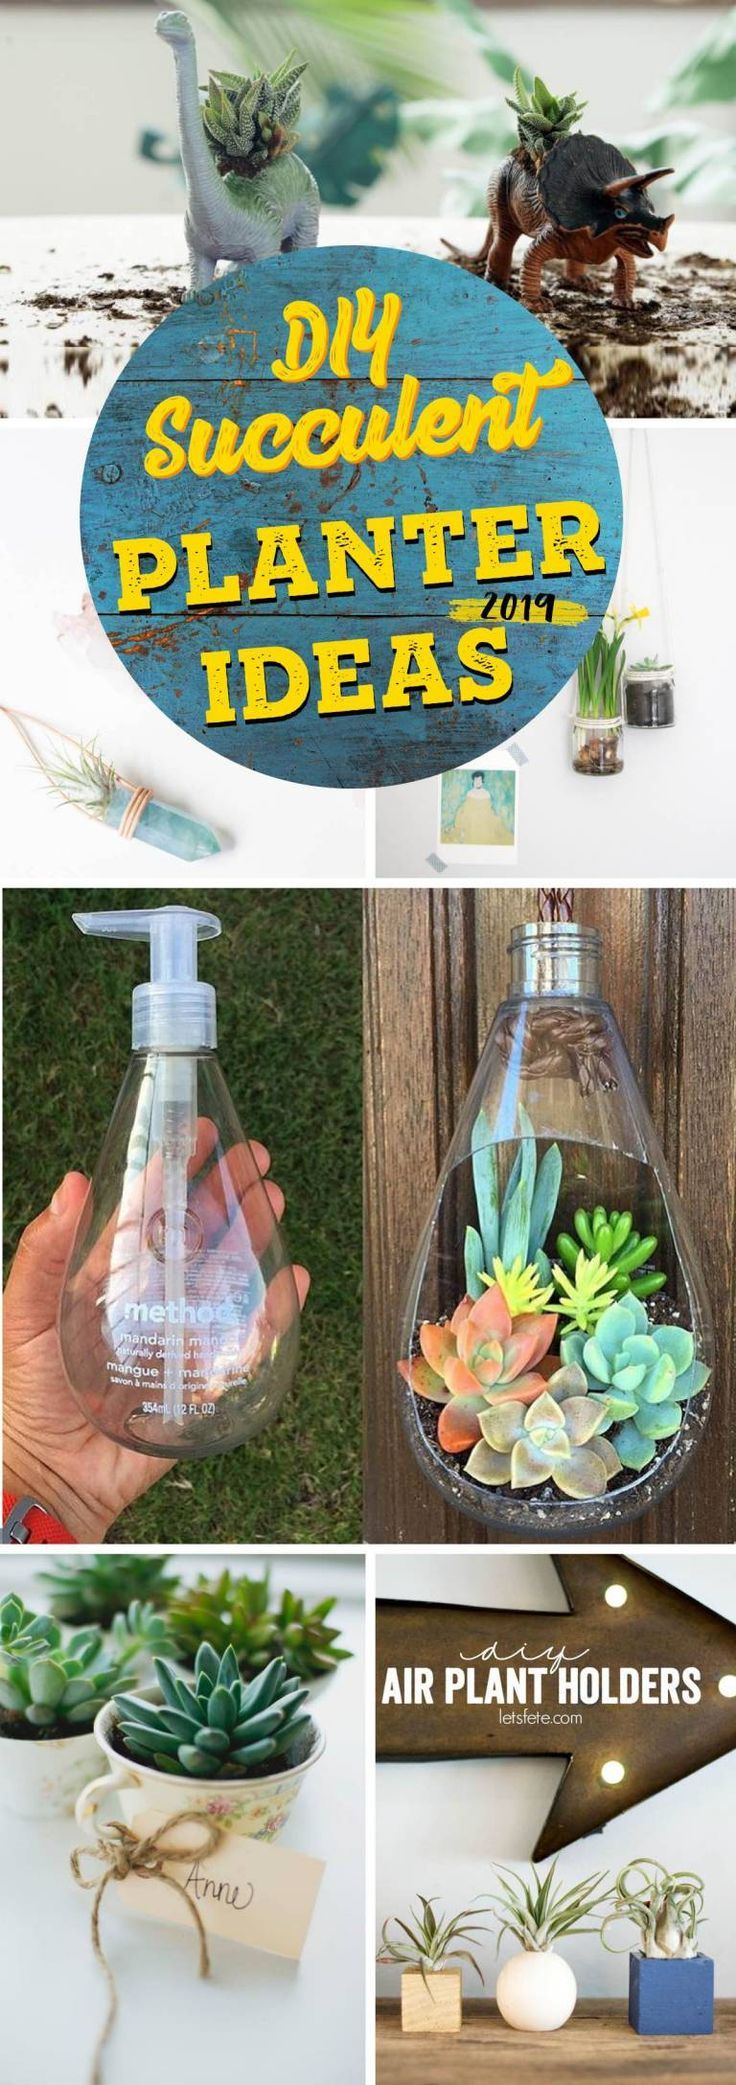 19 DIY Succulent Planter Ideas that Are So Cool You Wont Want to Miss!